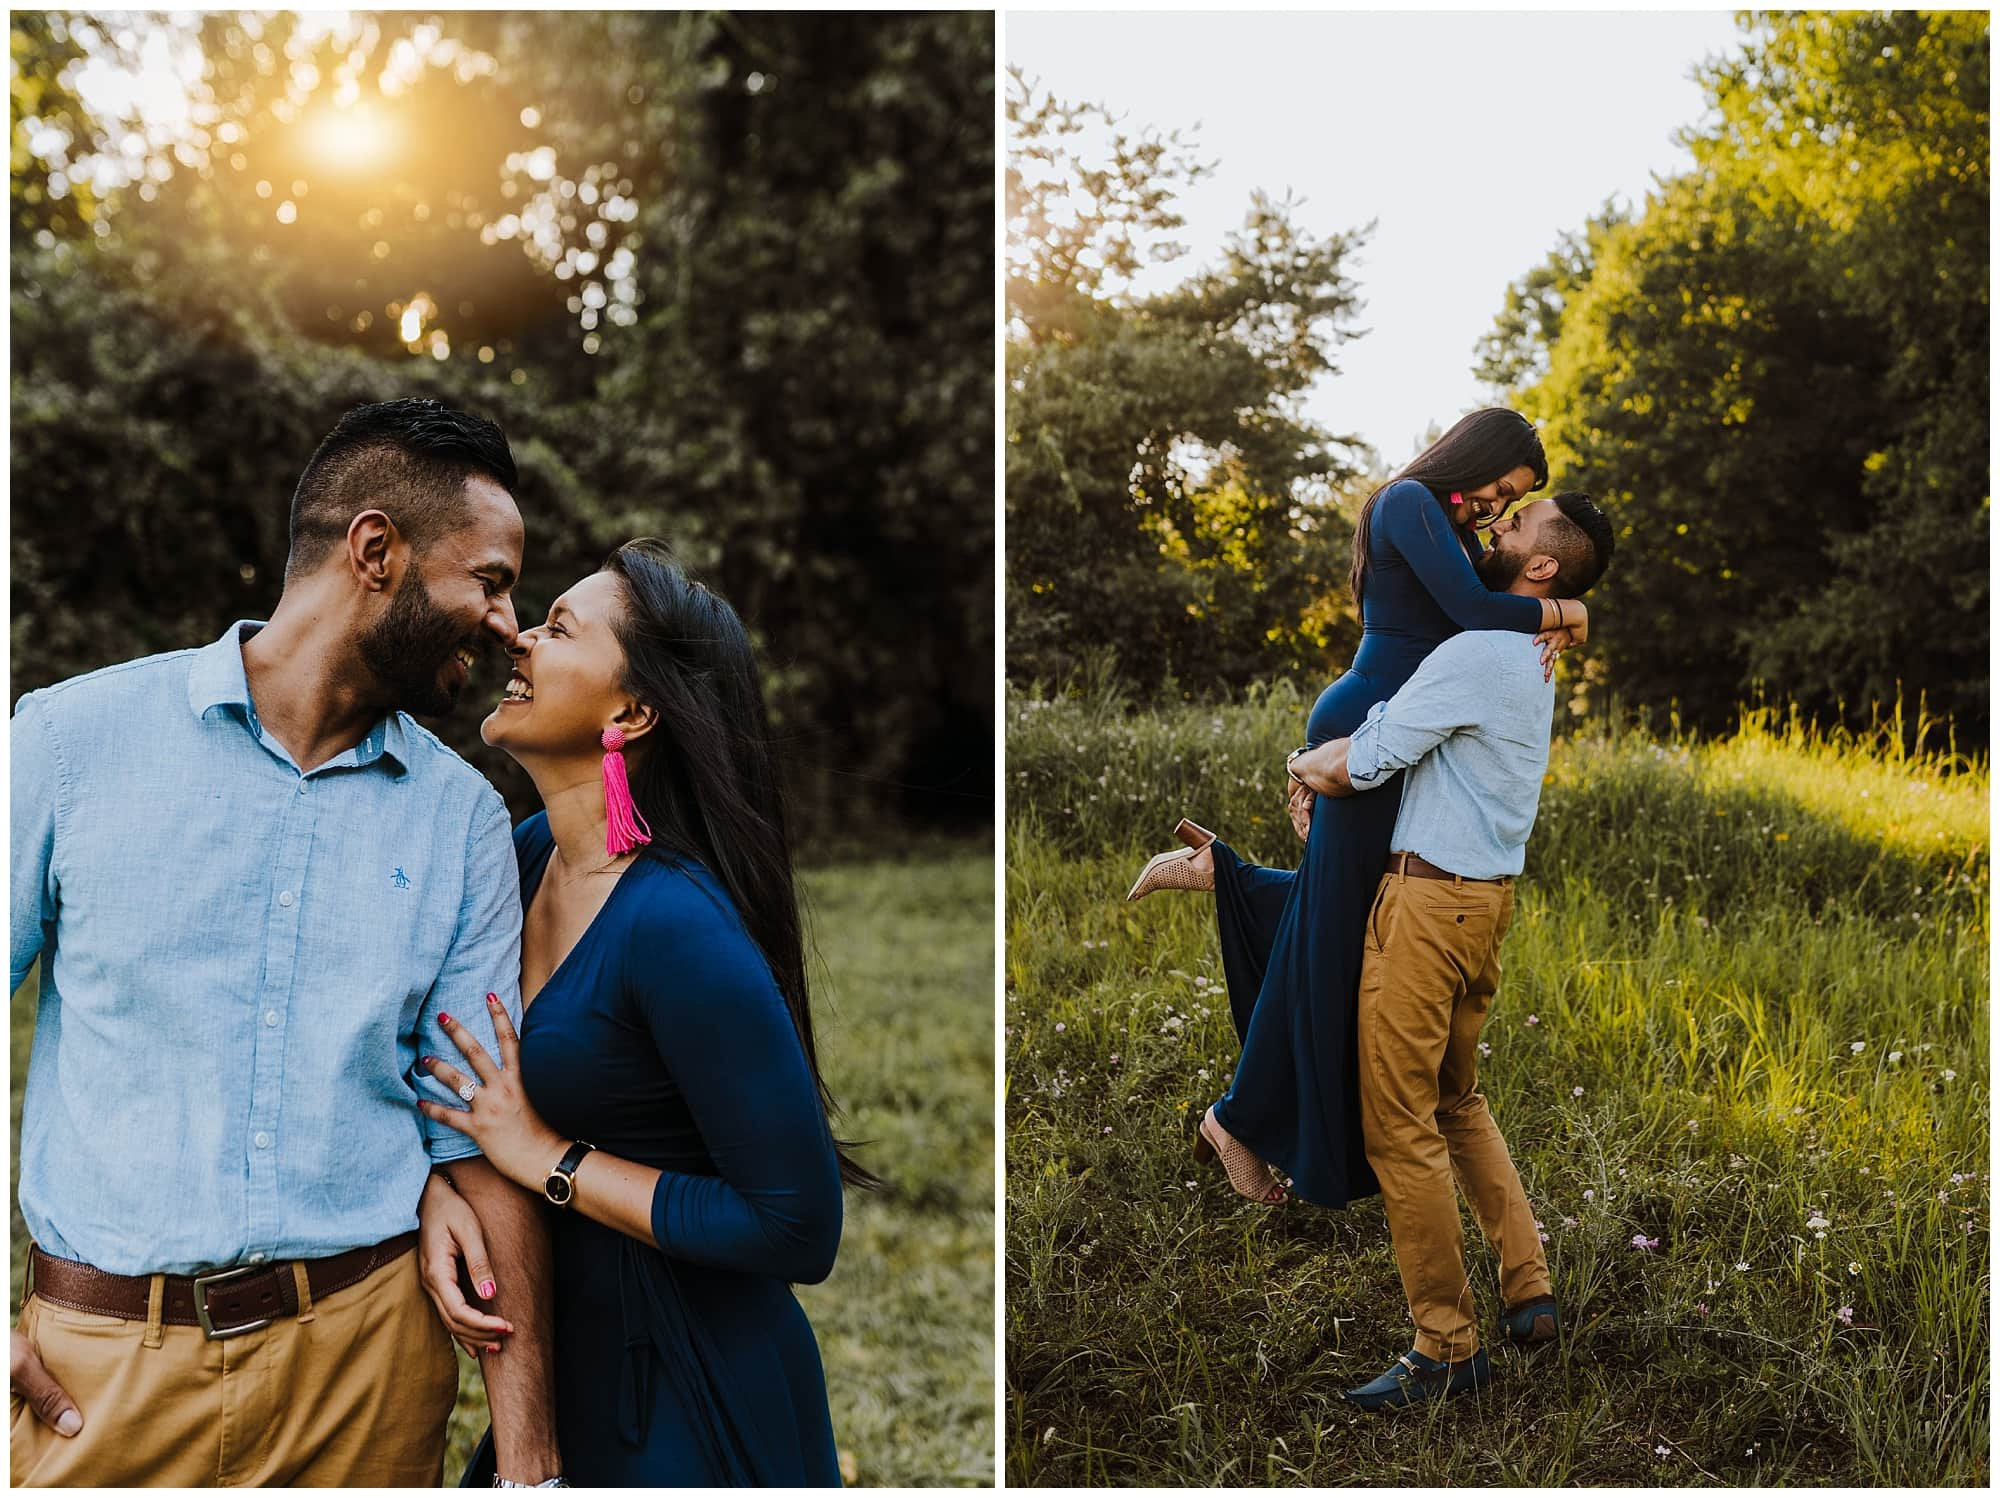 Summer Stony Creek Engagement Session-20.JPG